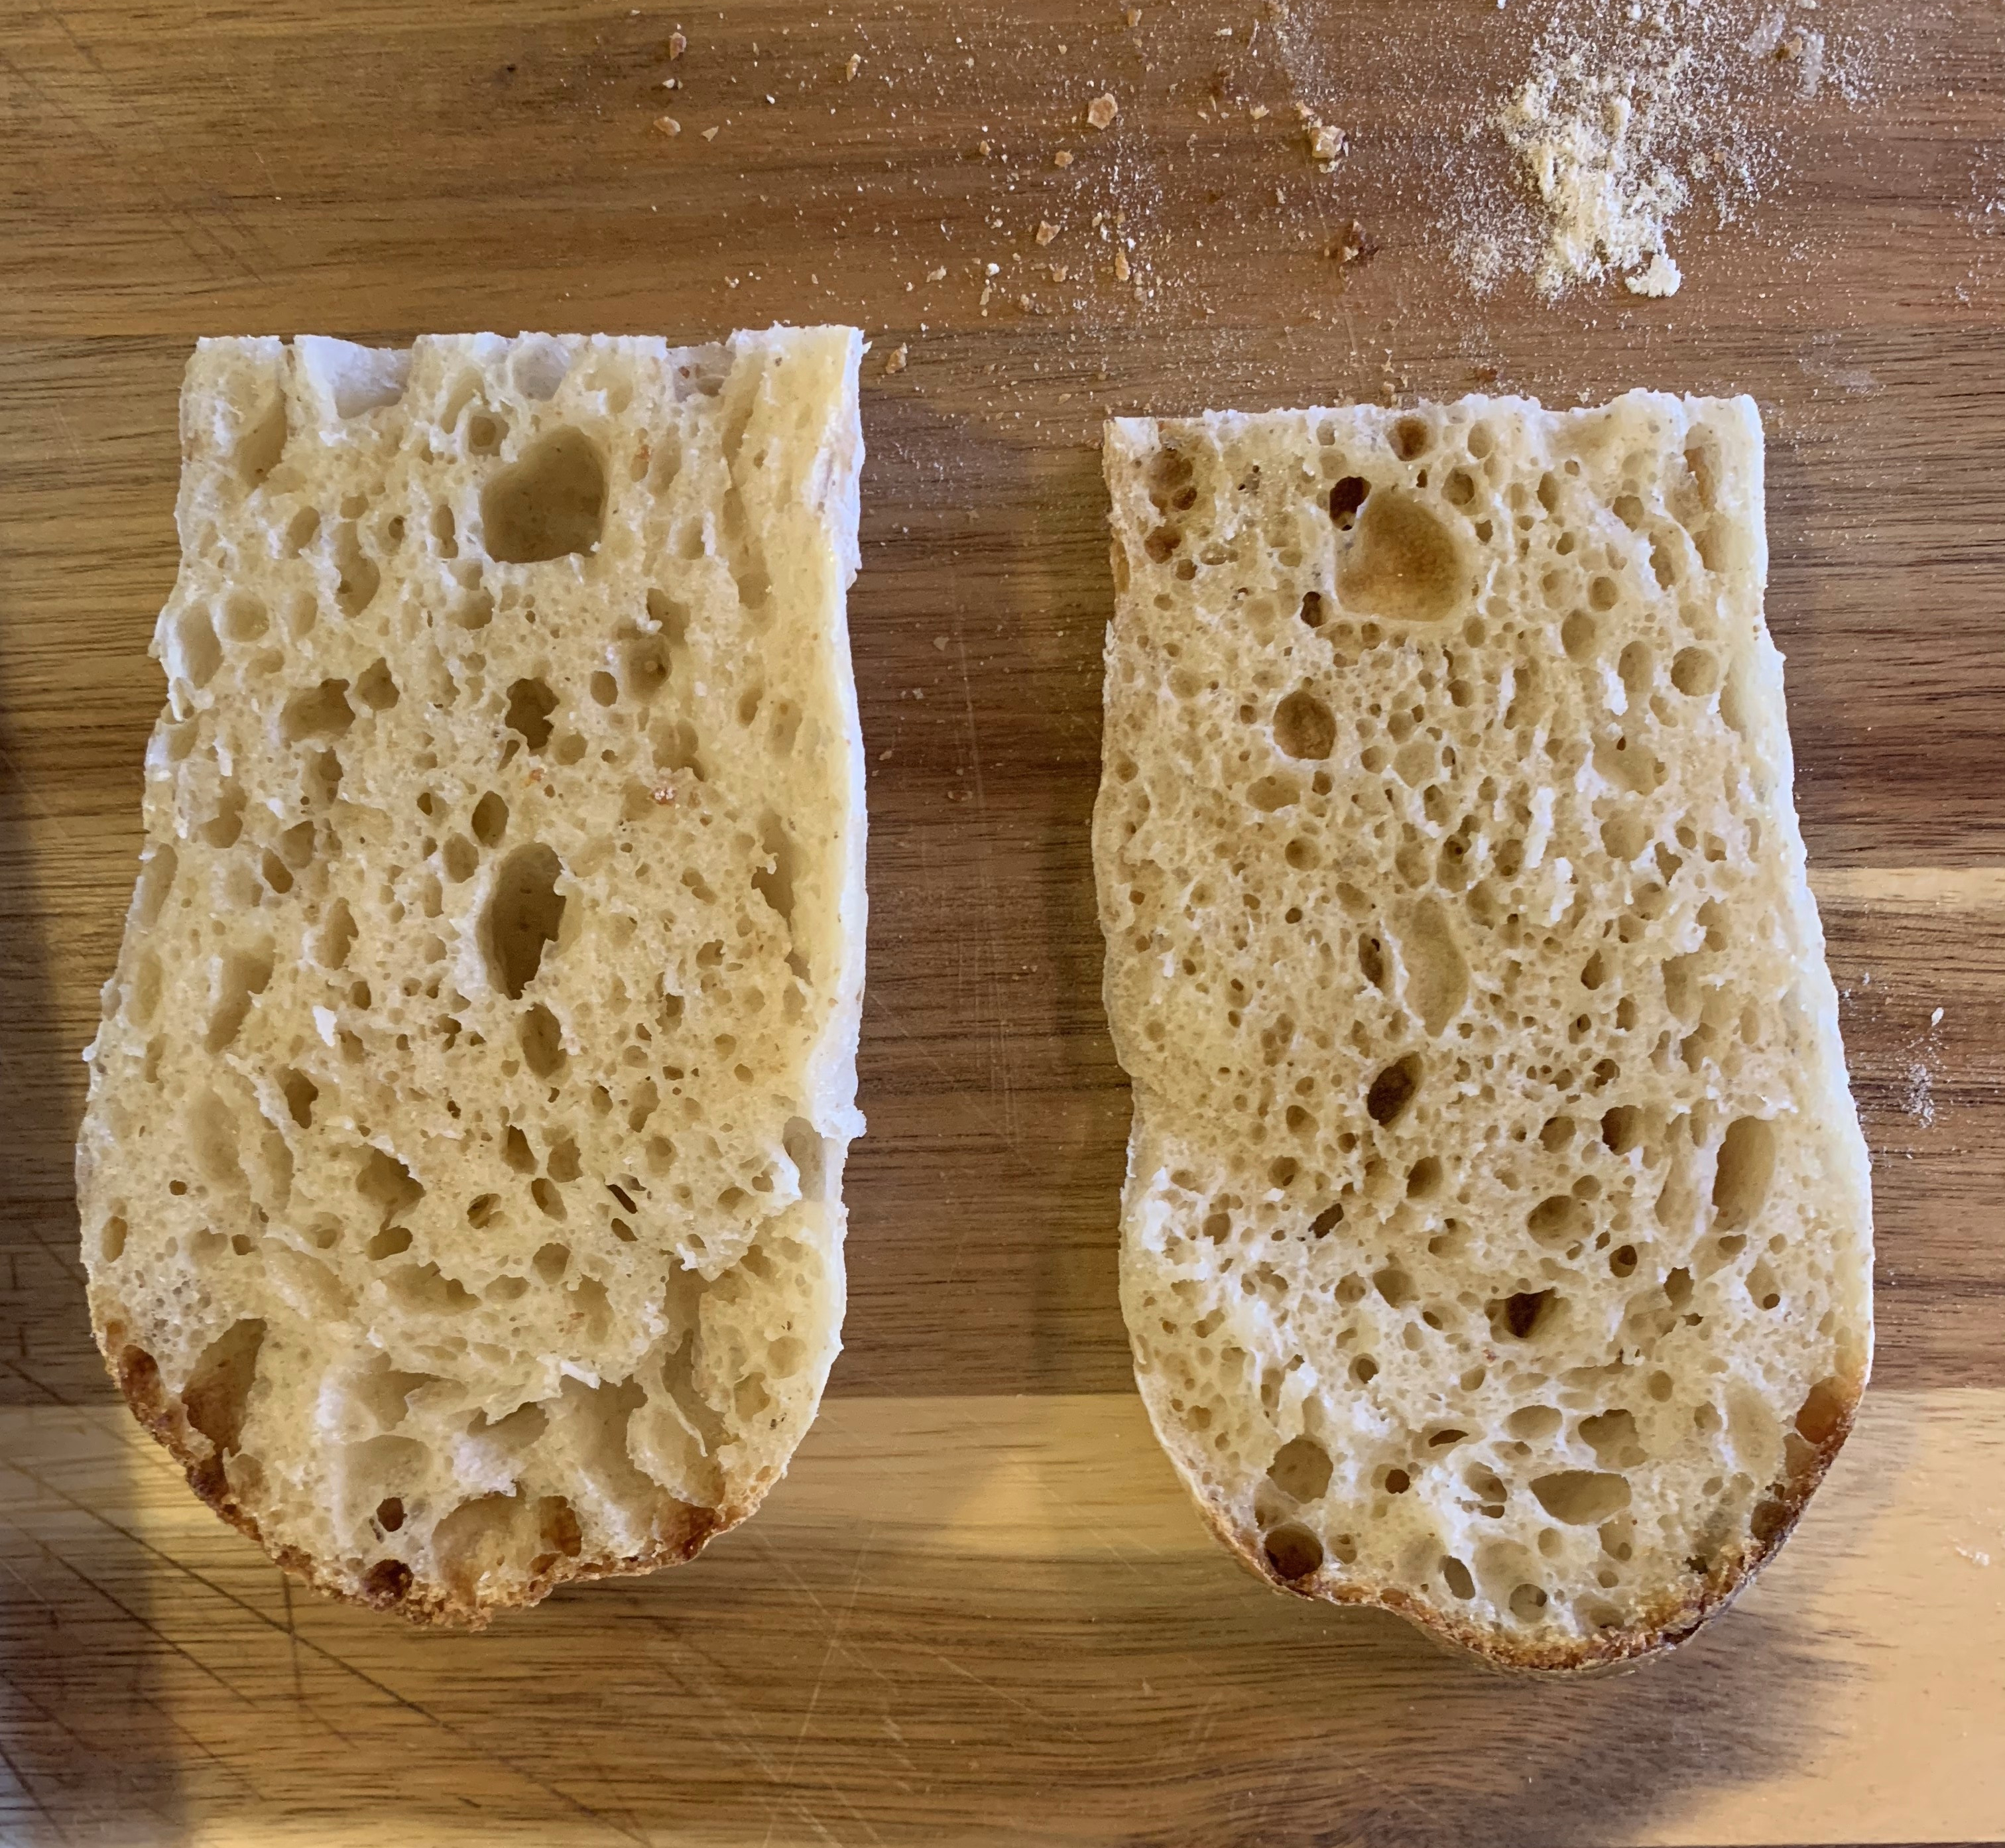 Two small pieces of birote, sliced open showing an even, medium crumb.